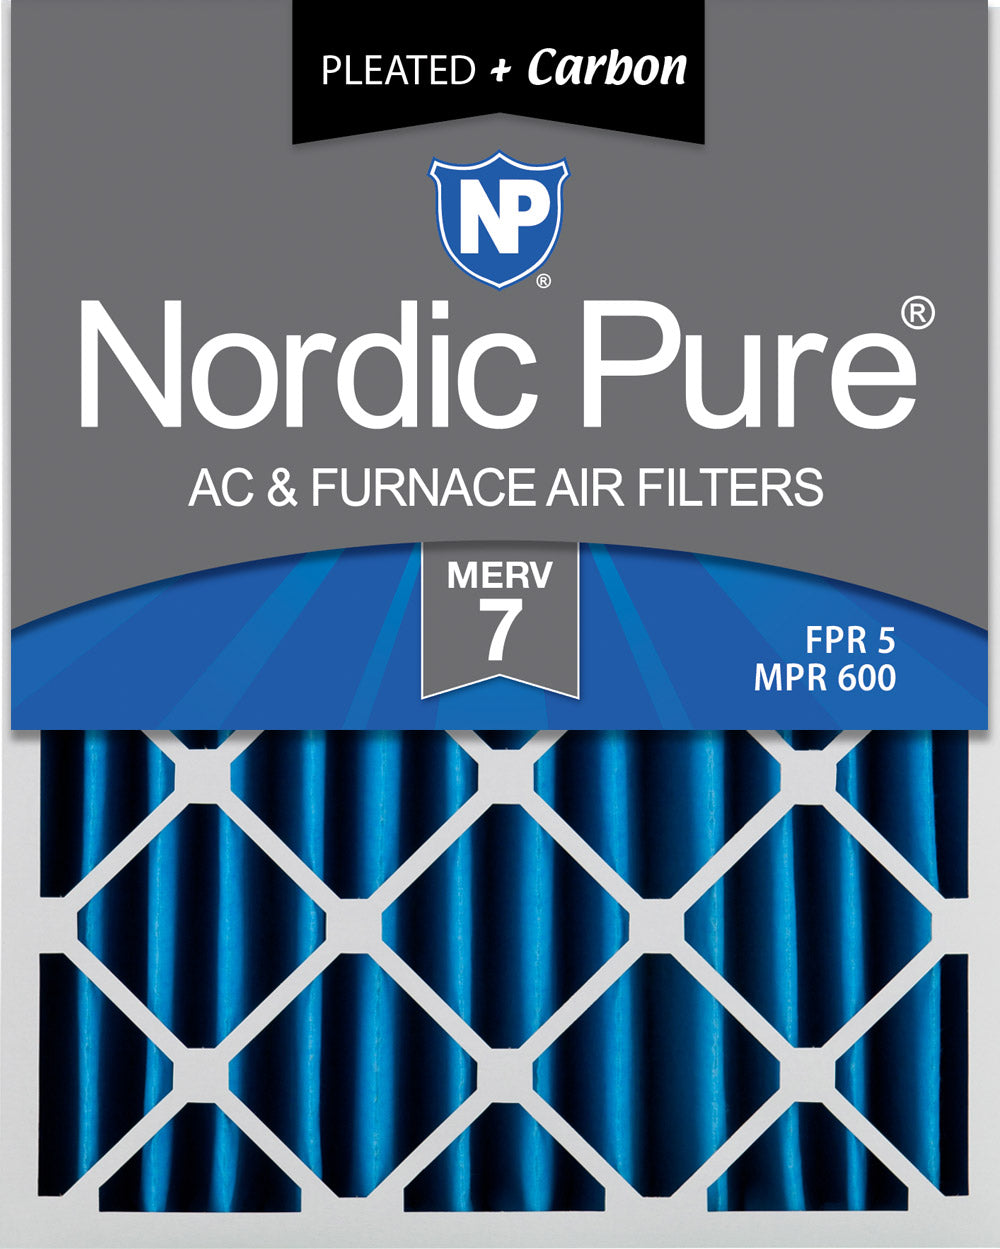 16x20x4 (3 5/8) Pleated Air Filters MERV 7 Plus Carbon 1 Pack